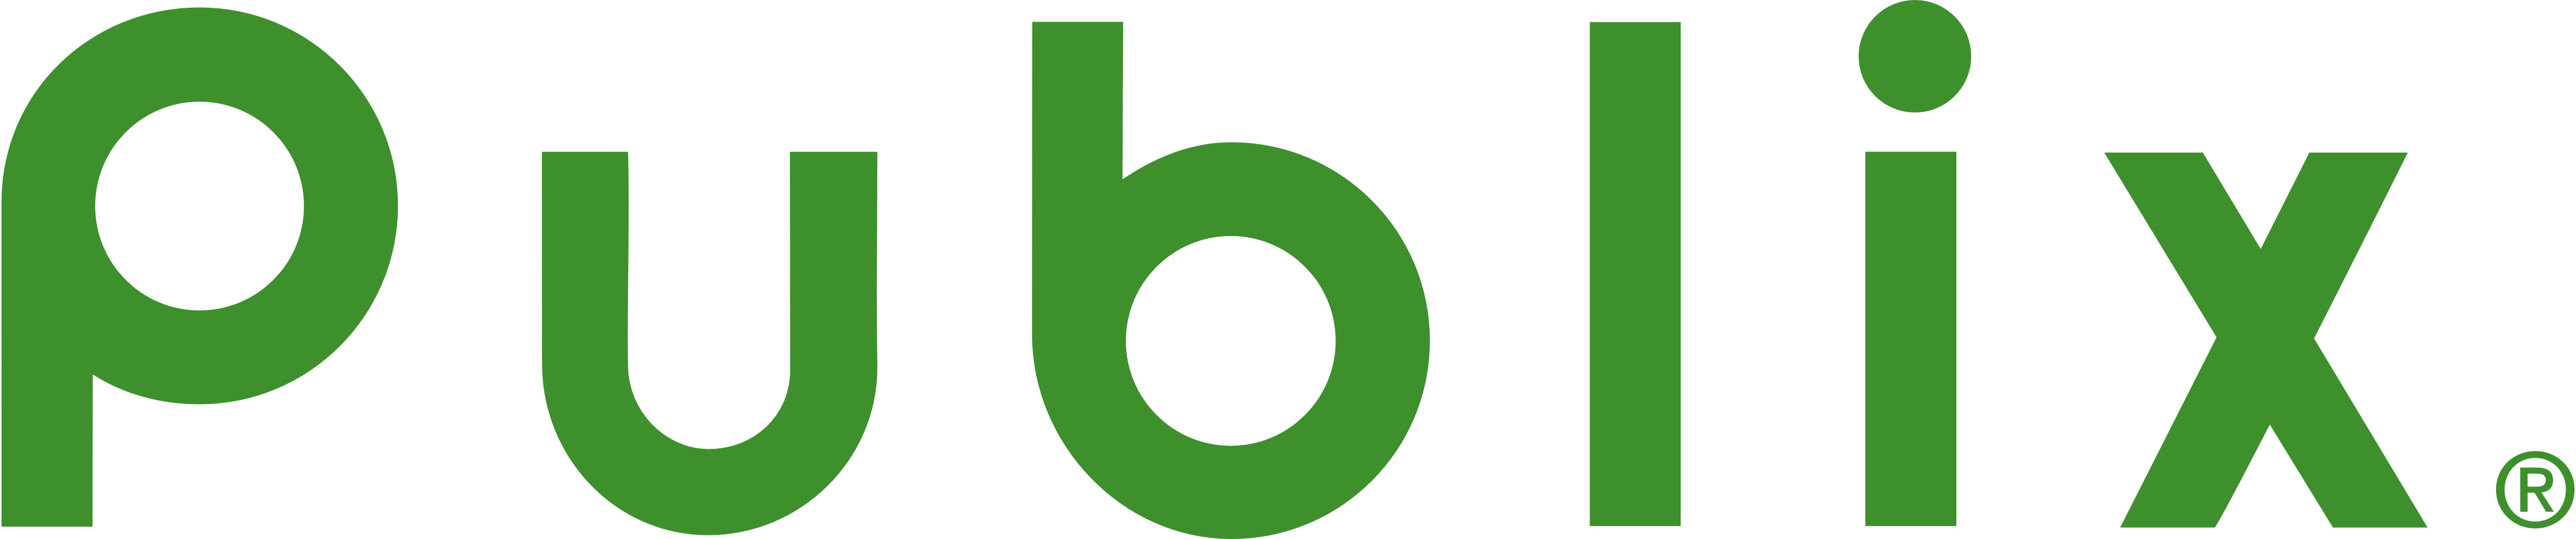 Publix Logos Download